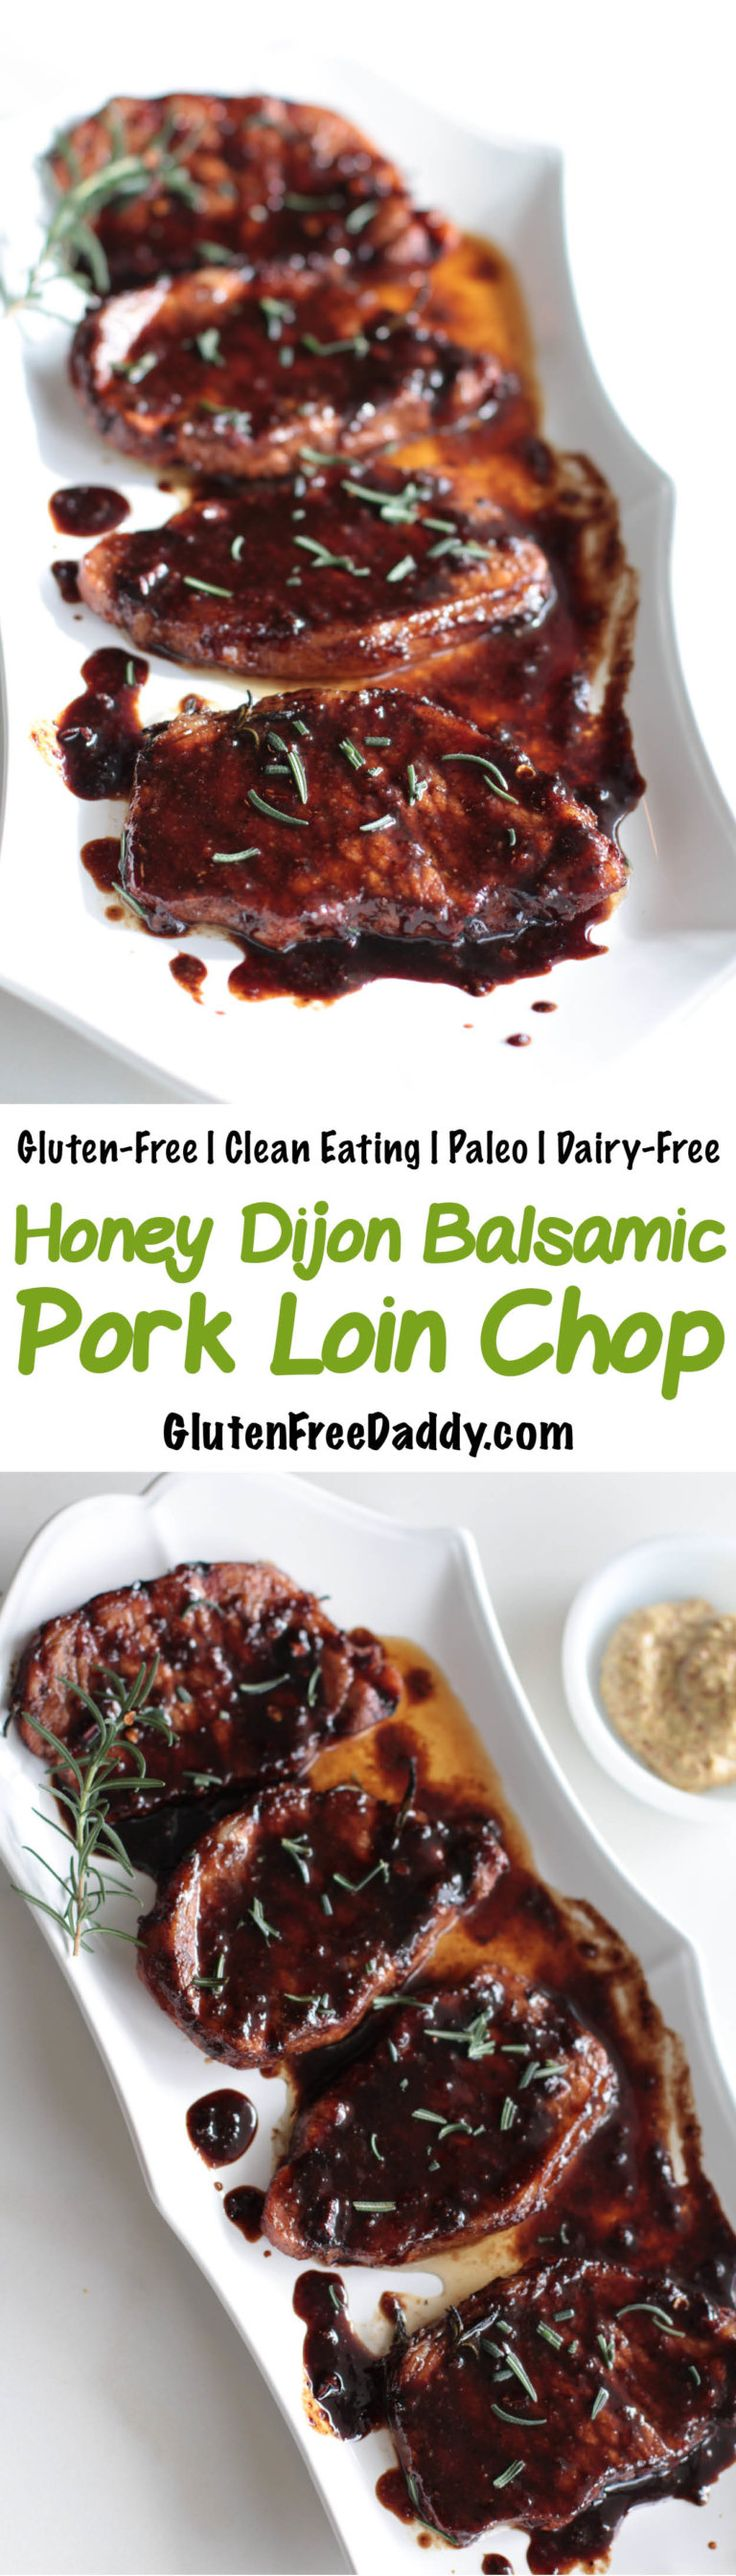 Skinny Honey Dijon Balsamic Pork Loin Chop Recipe